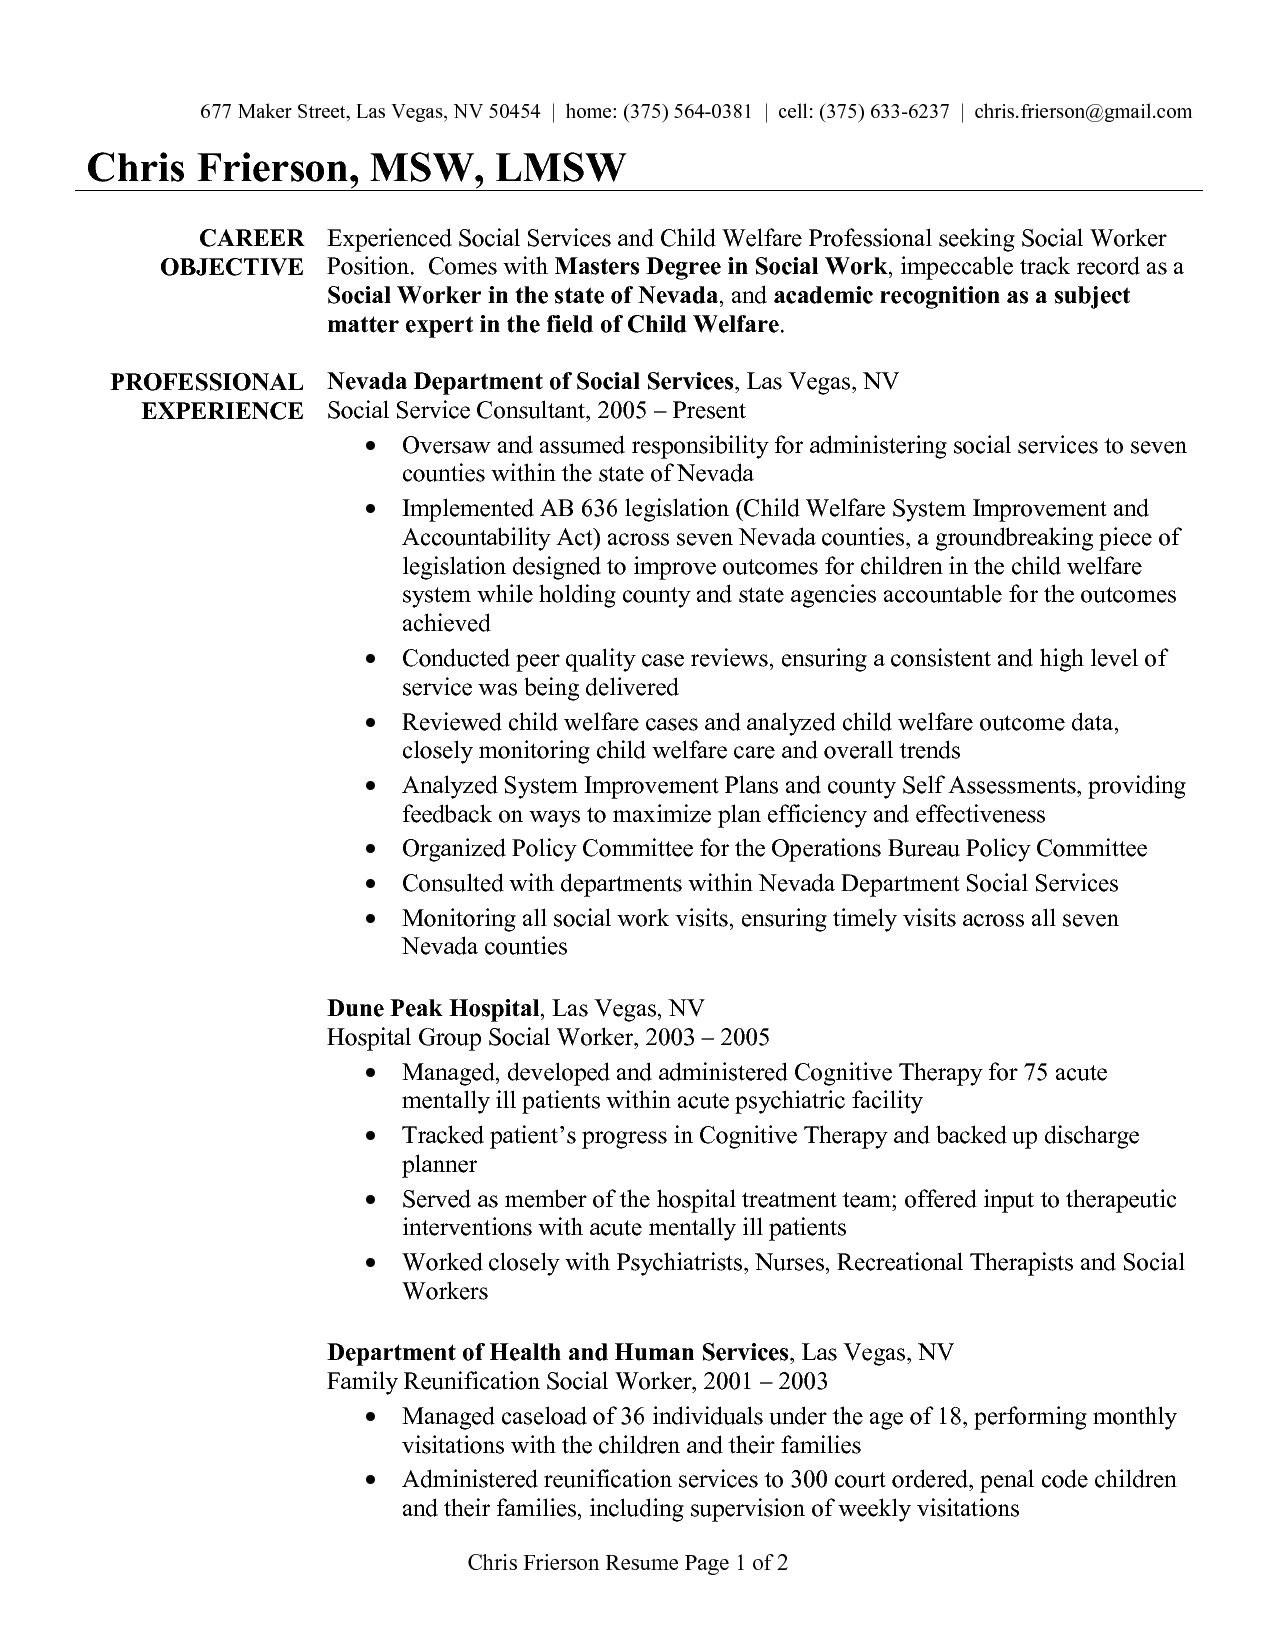 social work resume examples  Social Worker Resume Sample  Projects to Try  Resume template